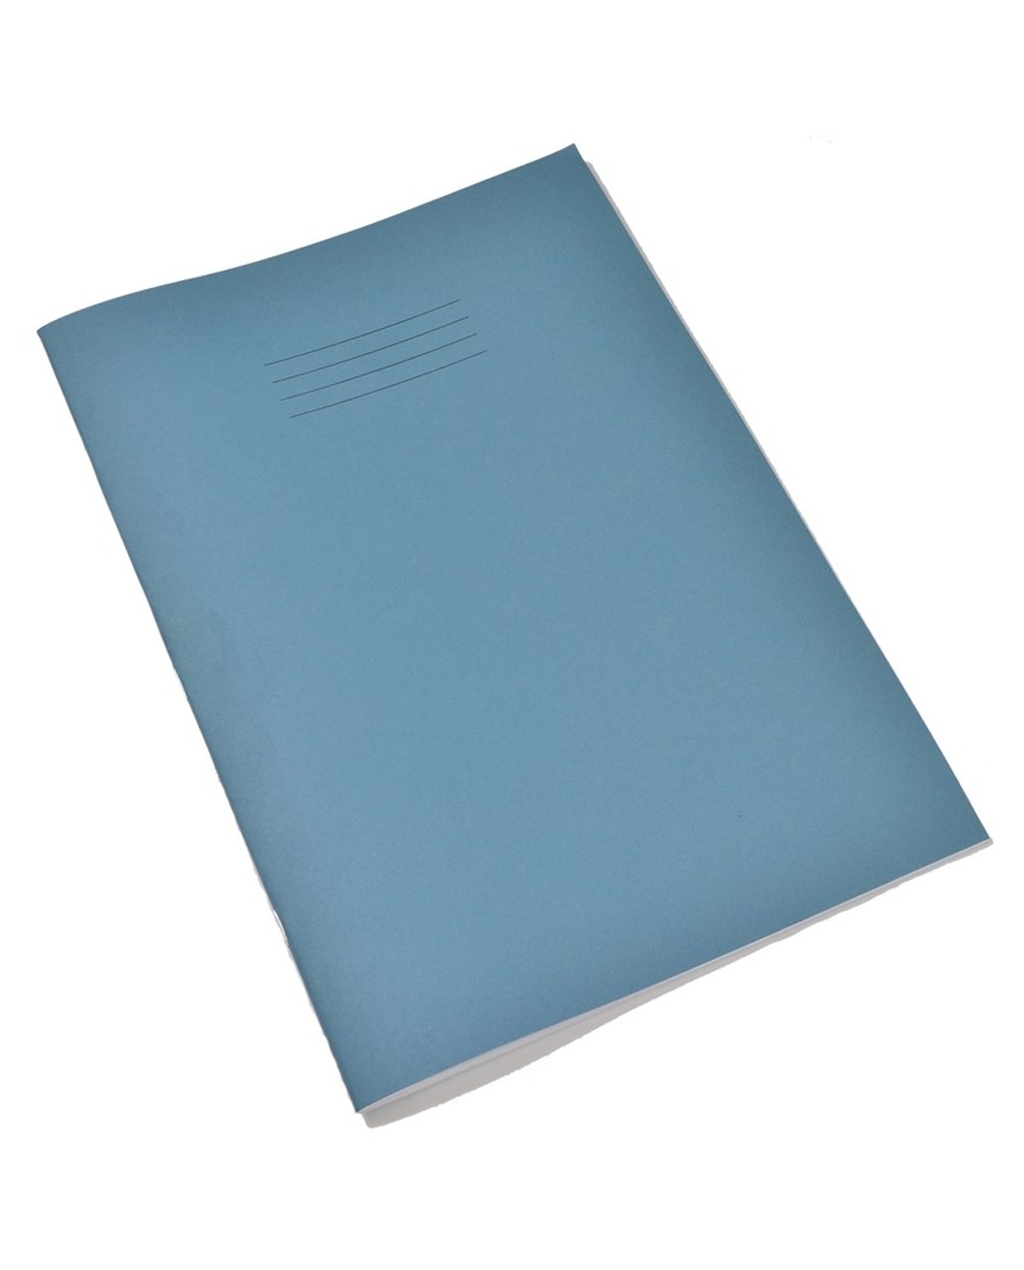 A4 Tinted Ex Books 8mm Ruled & Margin Green Paper, Light Blue Cover